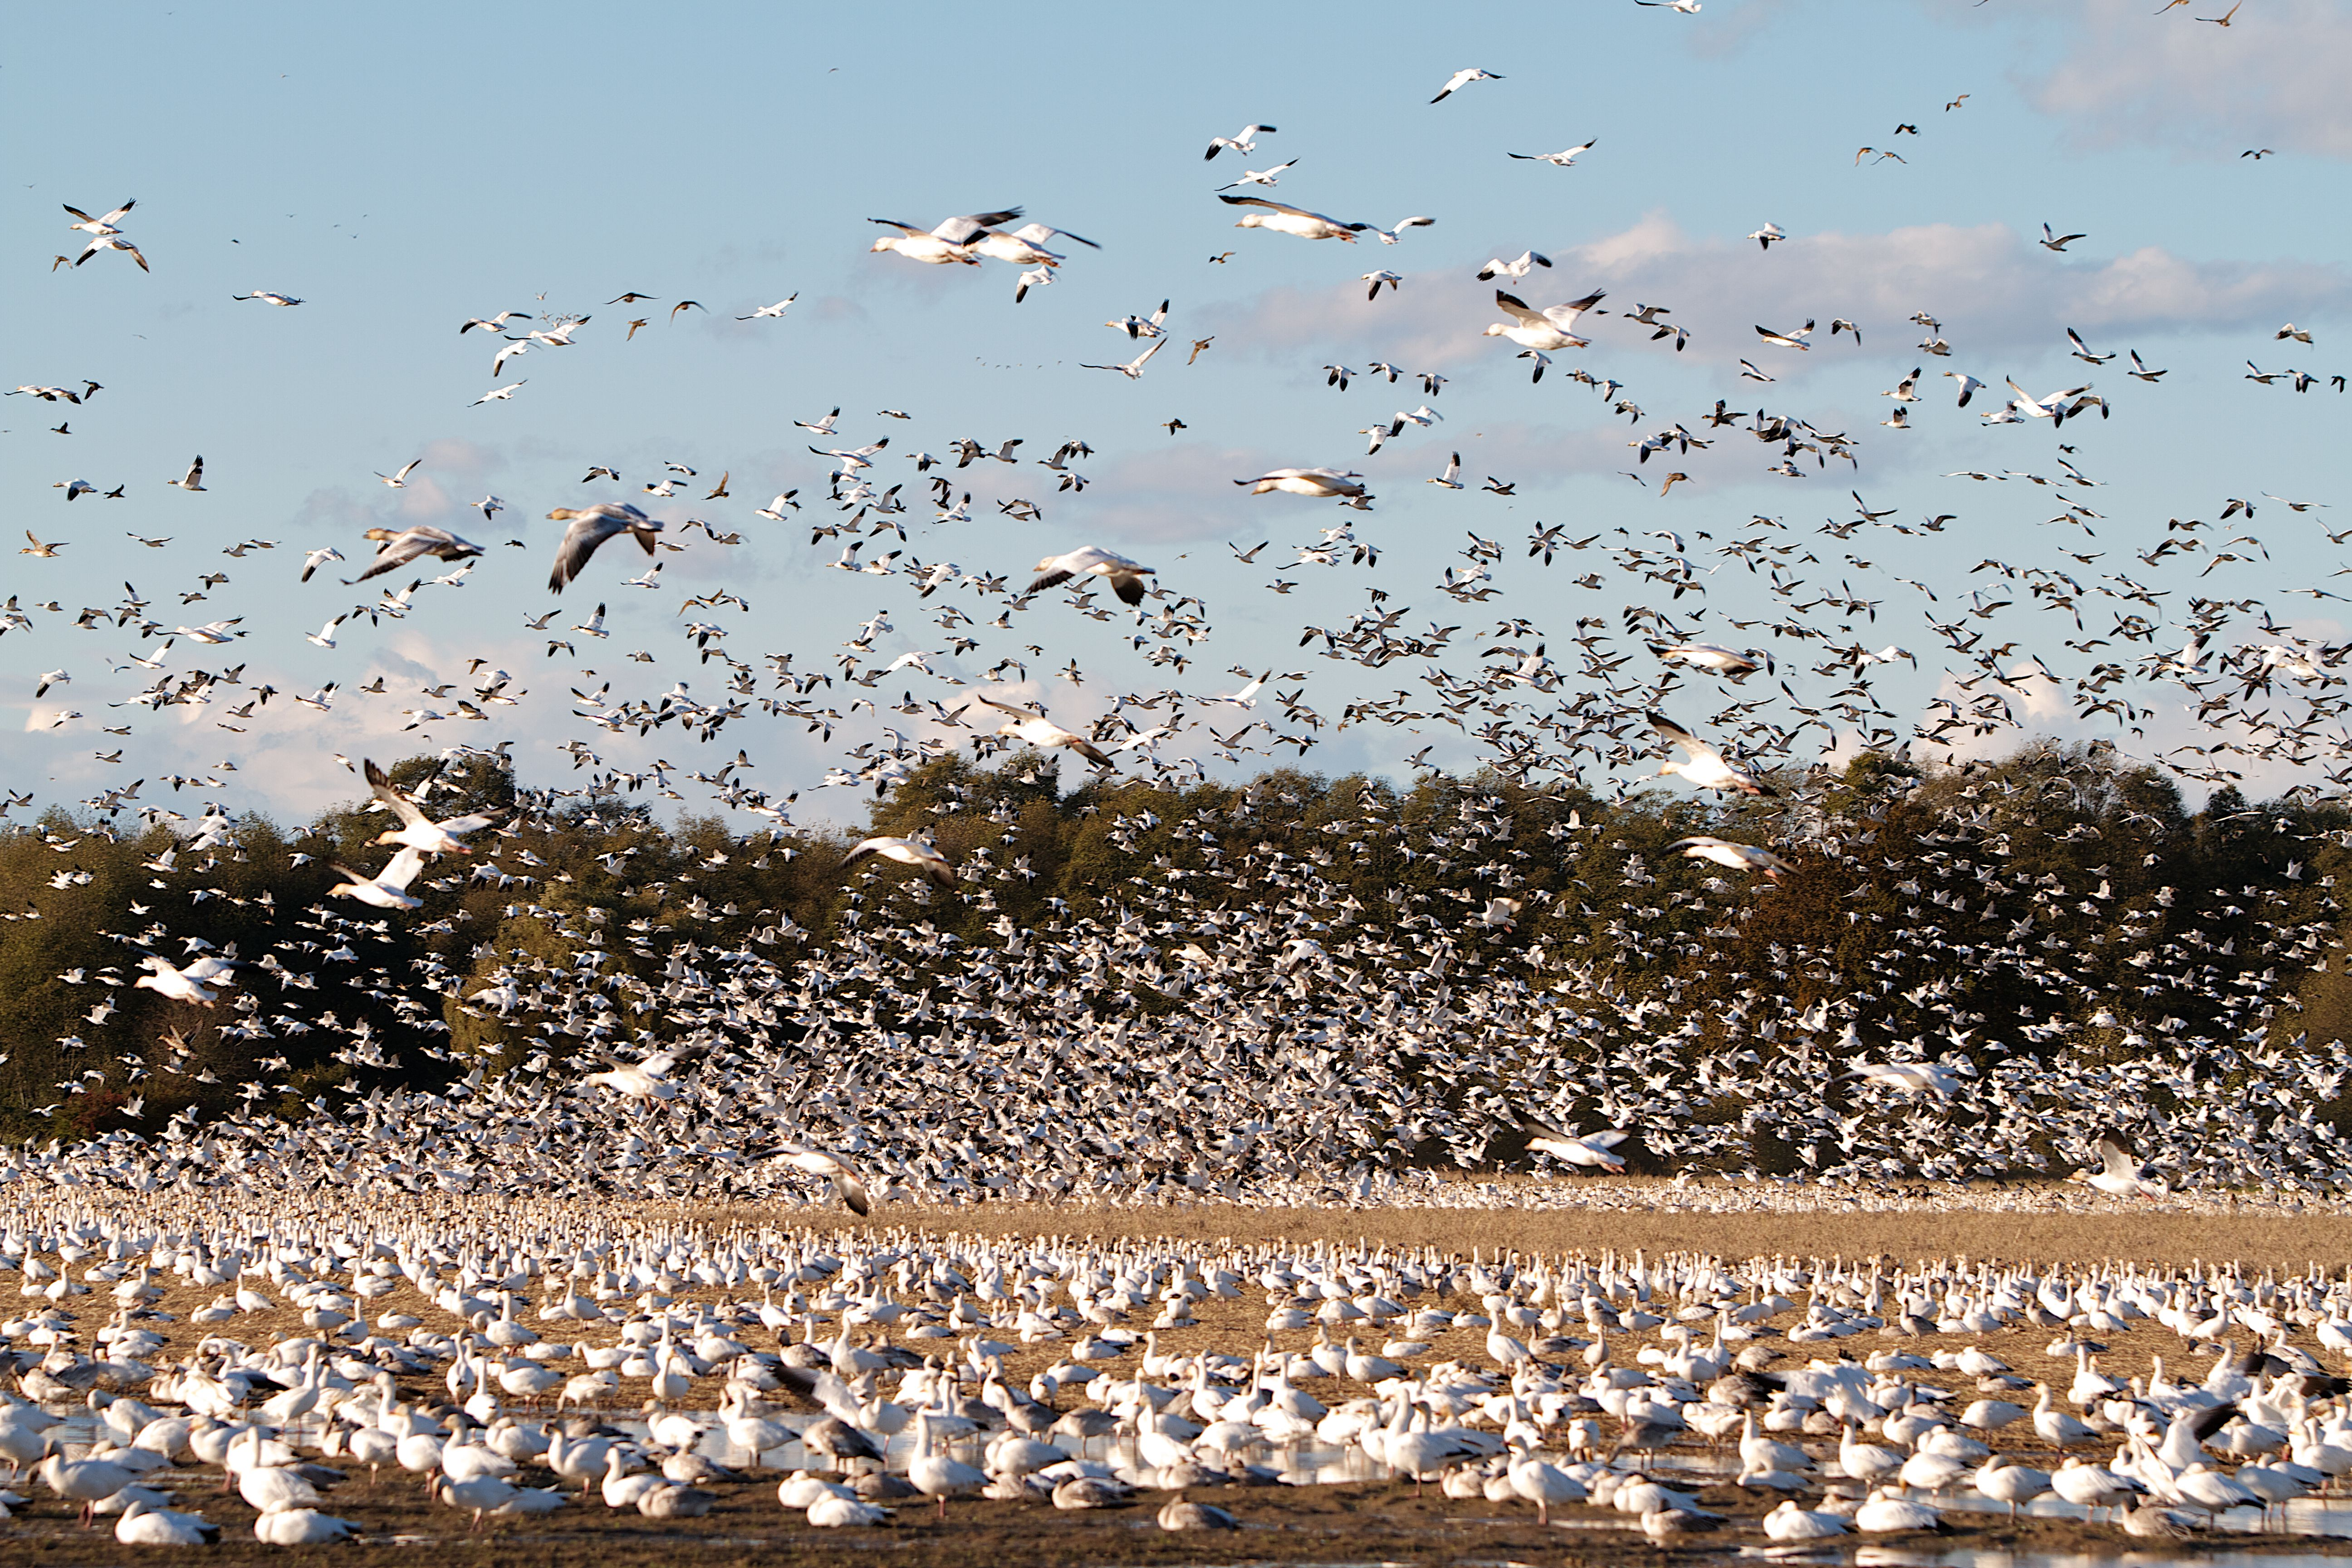 Snow Geese at Westham Island, Photo by Ian Logie